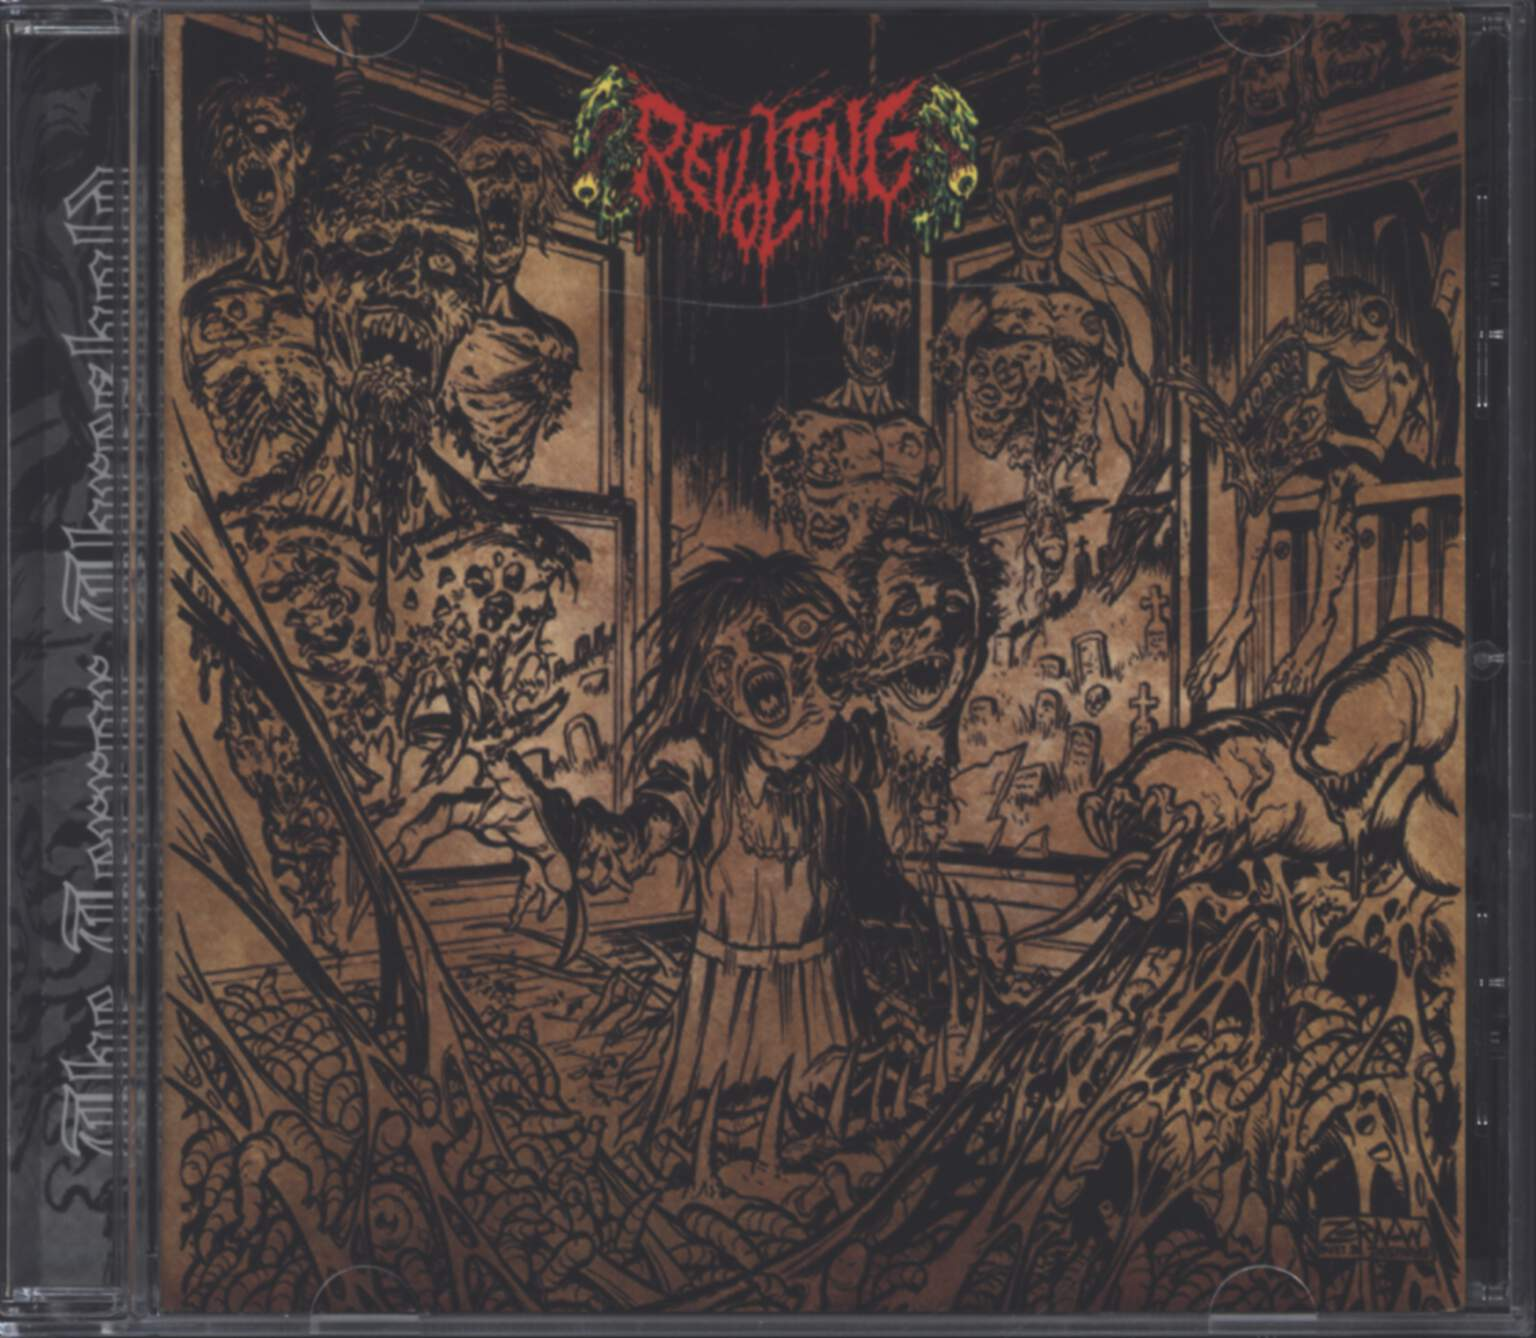 Revolting: The Terror Threshold, CD